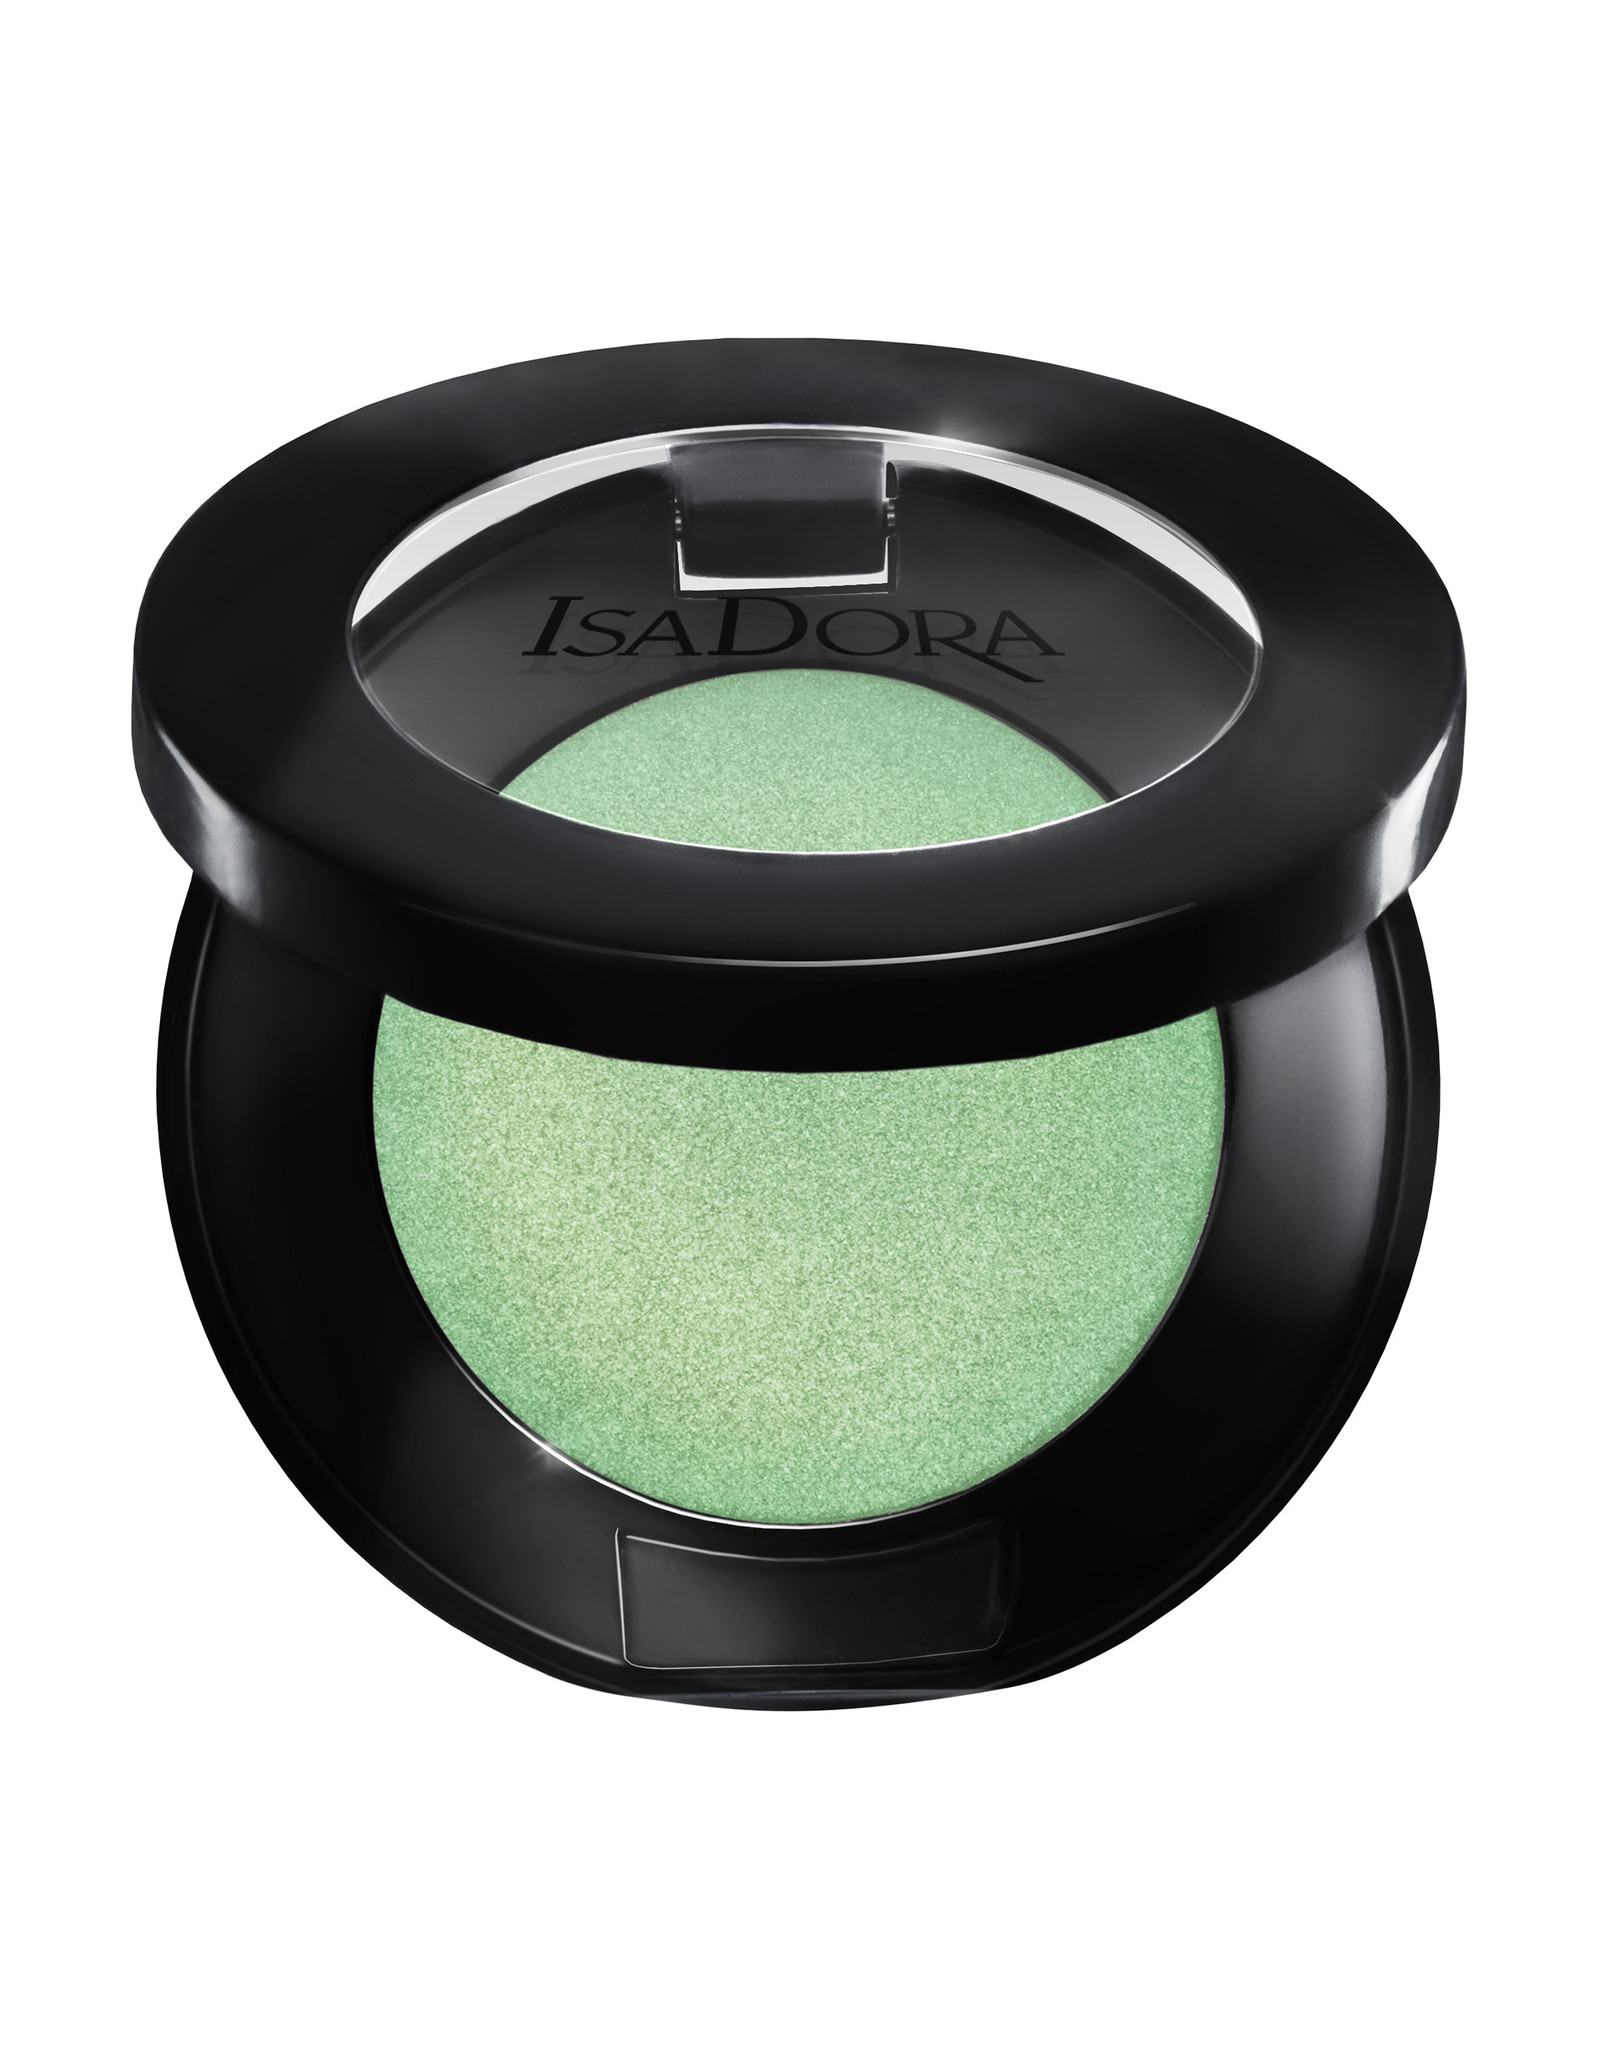 Isadora Green Flash N°57- Perfect Eyes - Isadora - Eye Shadow